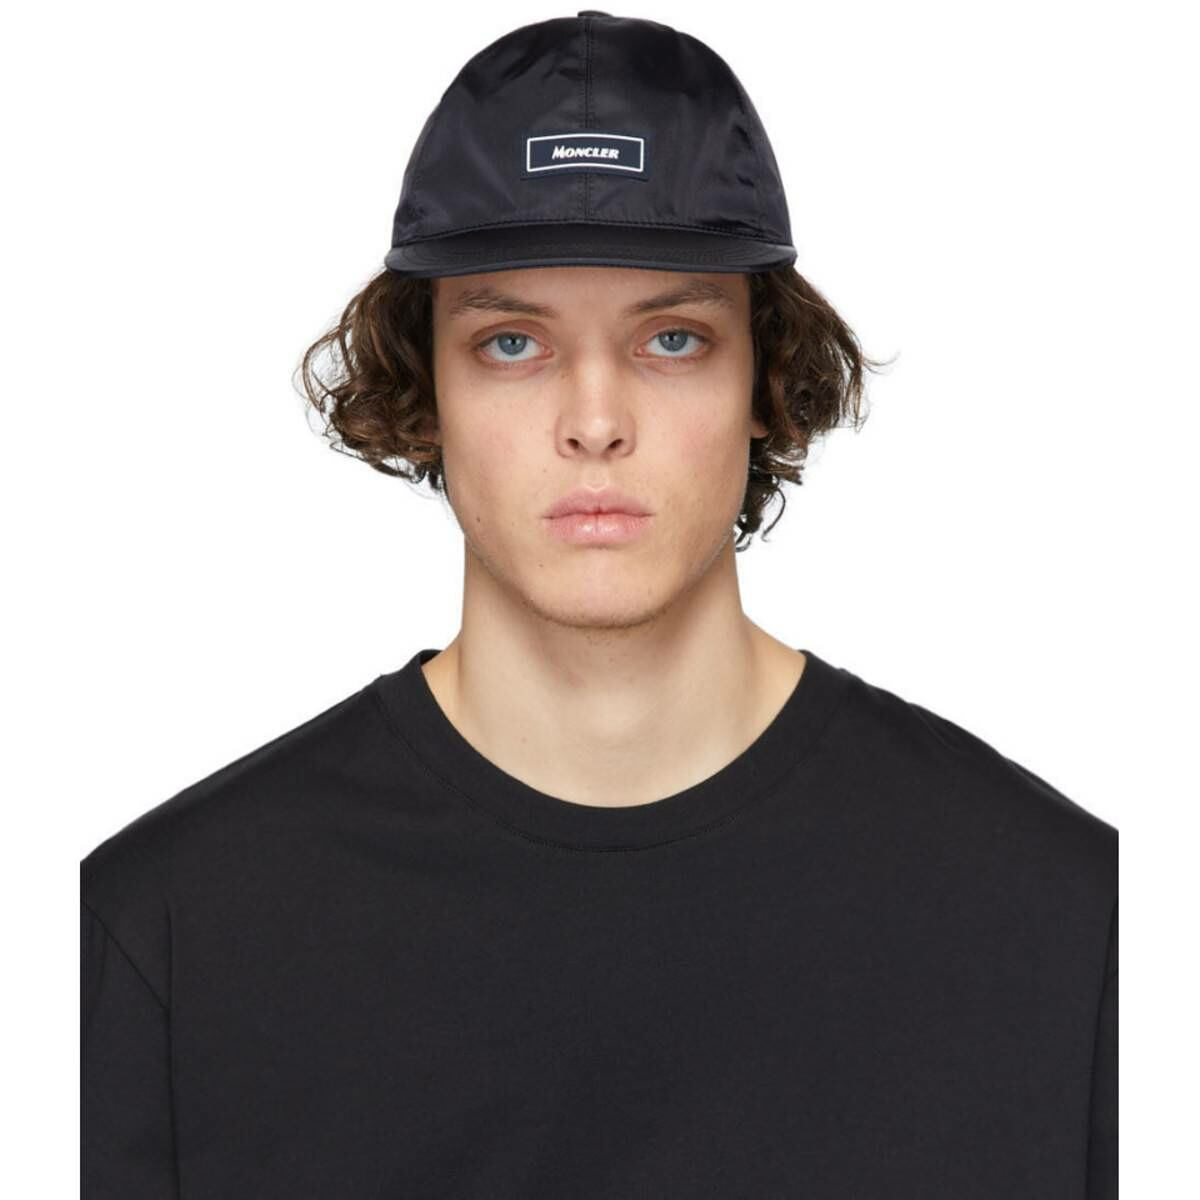 Moncler Navy Logo Cap Ssense USA MEN Men ACCESSORIES Mens CAPS